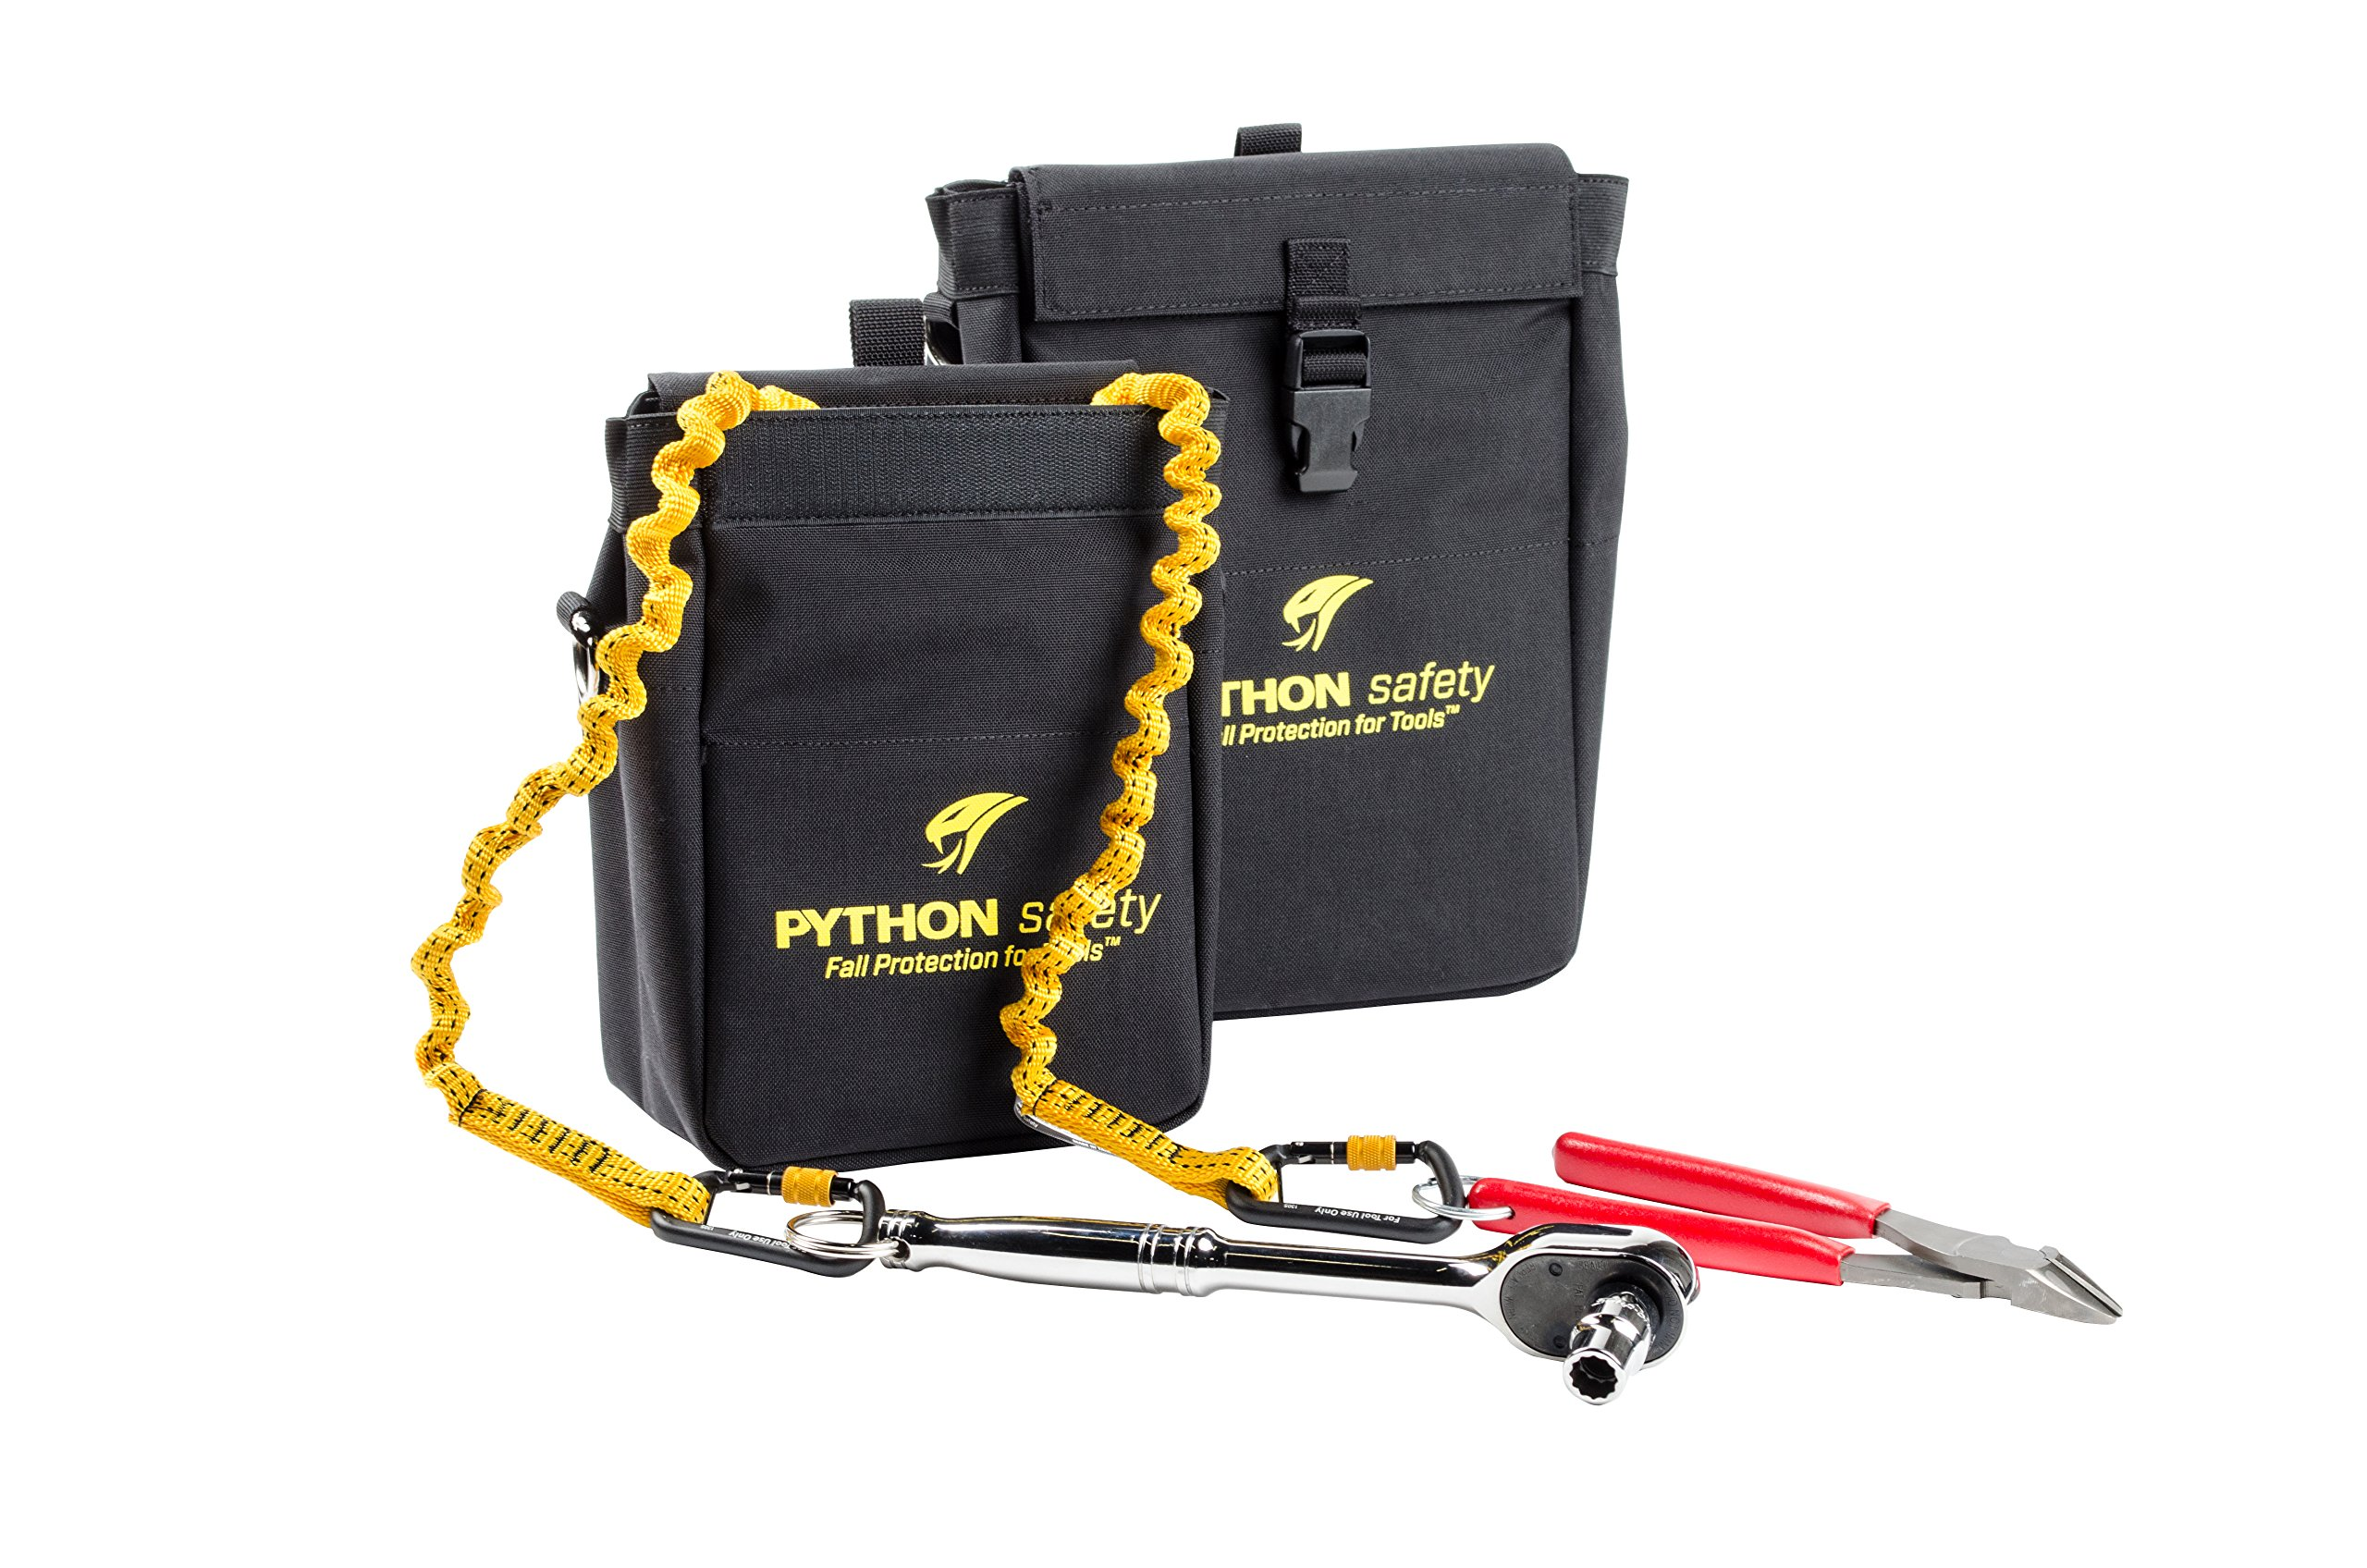 3M DBI-SALA Fall Protection For Tools, 1500125,Made w/Heavy Duty Durable Canvas, w/Inner Lining Prevents Punctures, w/2 Retractors